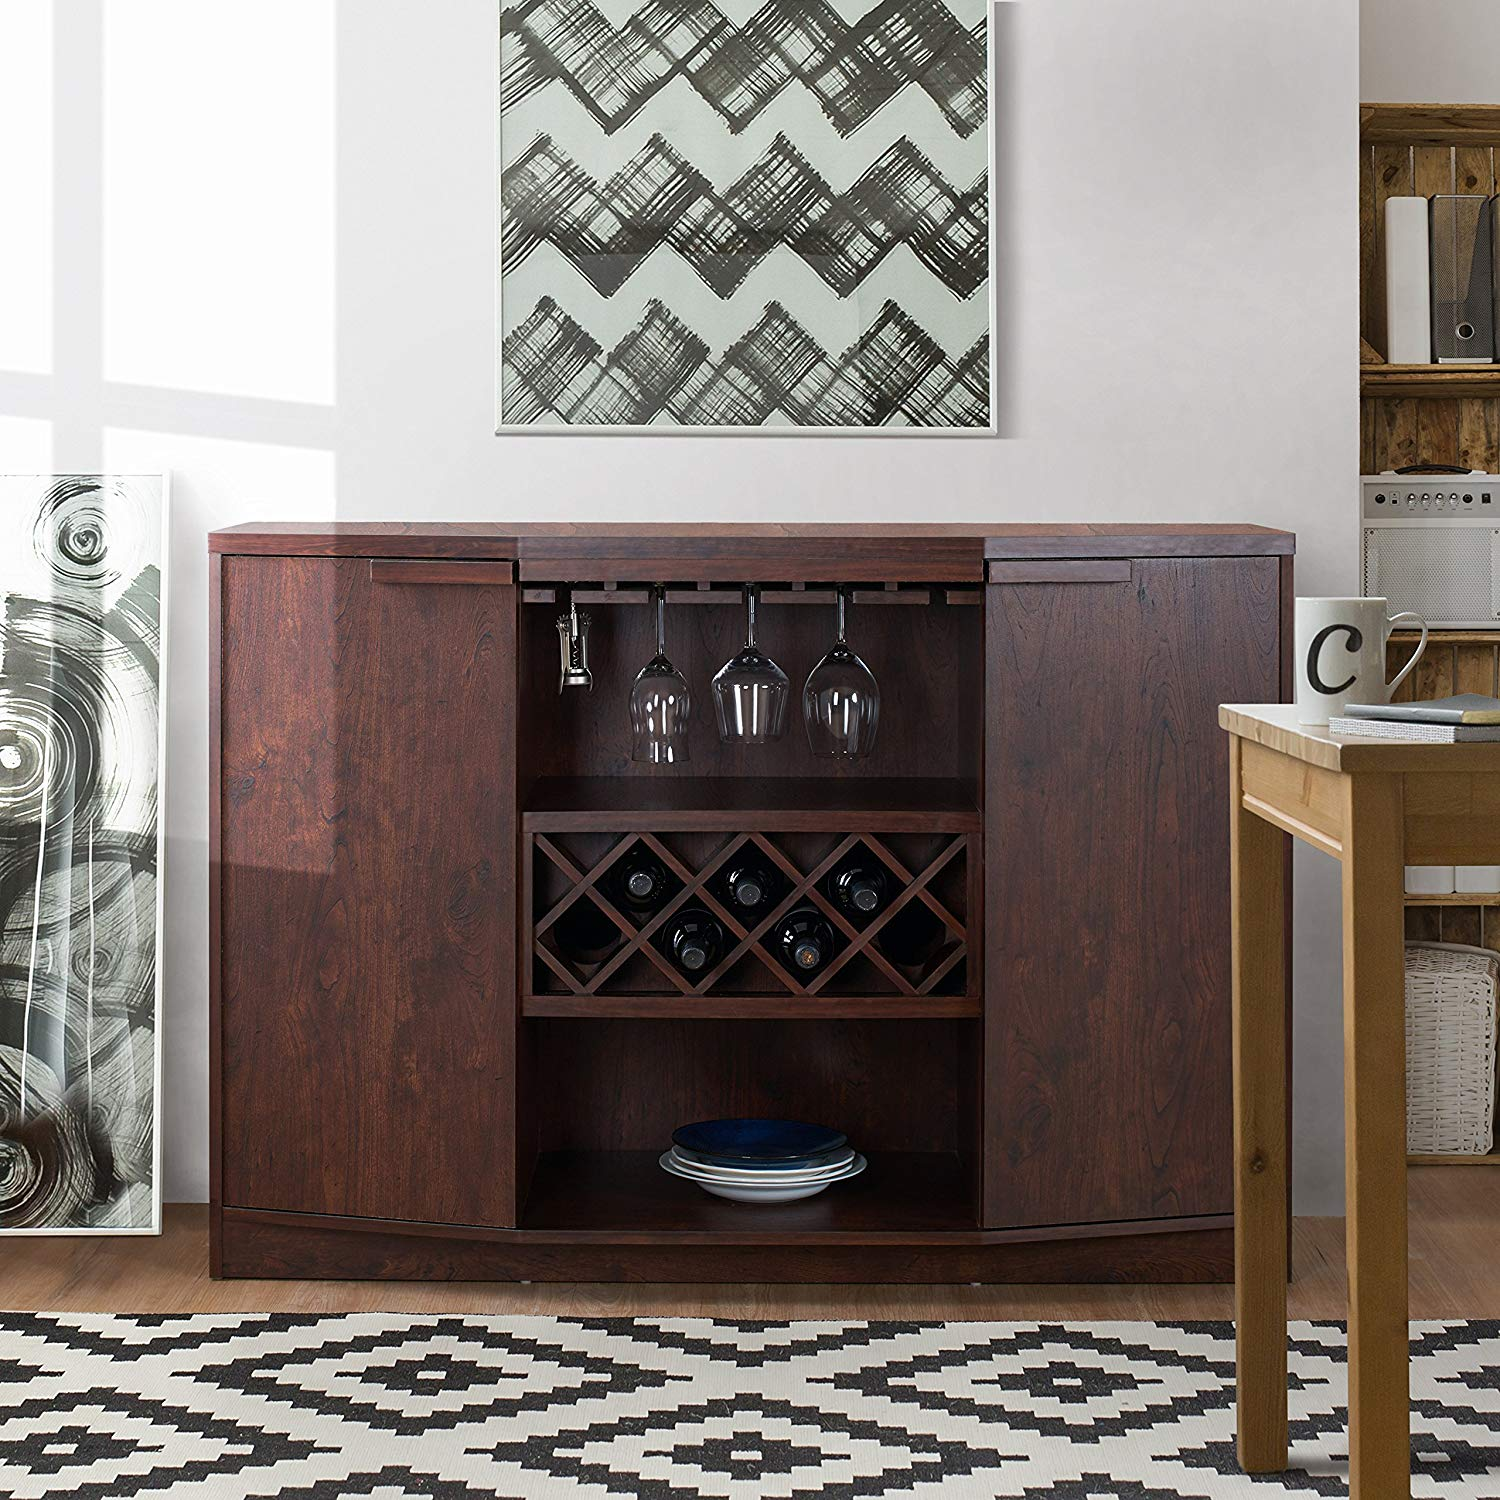 Modern Multi-Storage Buffet, 2 Flat Panel Cabinets with 2 Shelves Each, 1 Open Shelf, Built-in Stemware and Wine Racks, Slightly Angled Cabinets, Sleek, Linear Lines, Vintage Walnut + Expert Guide